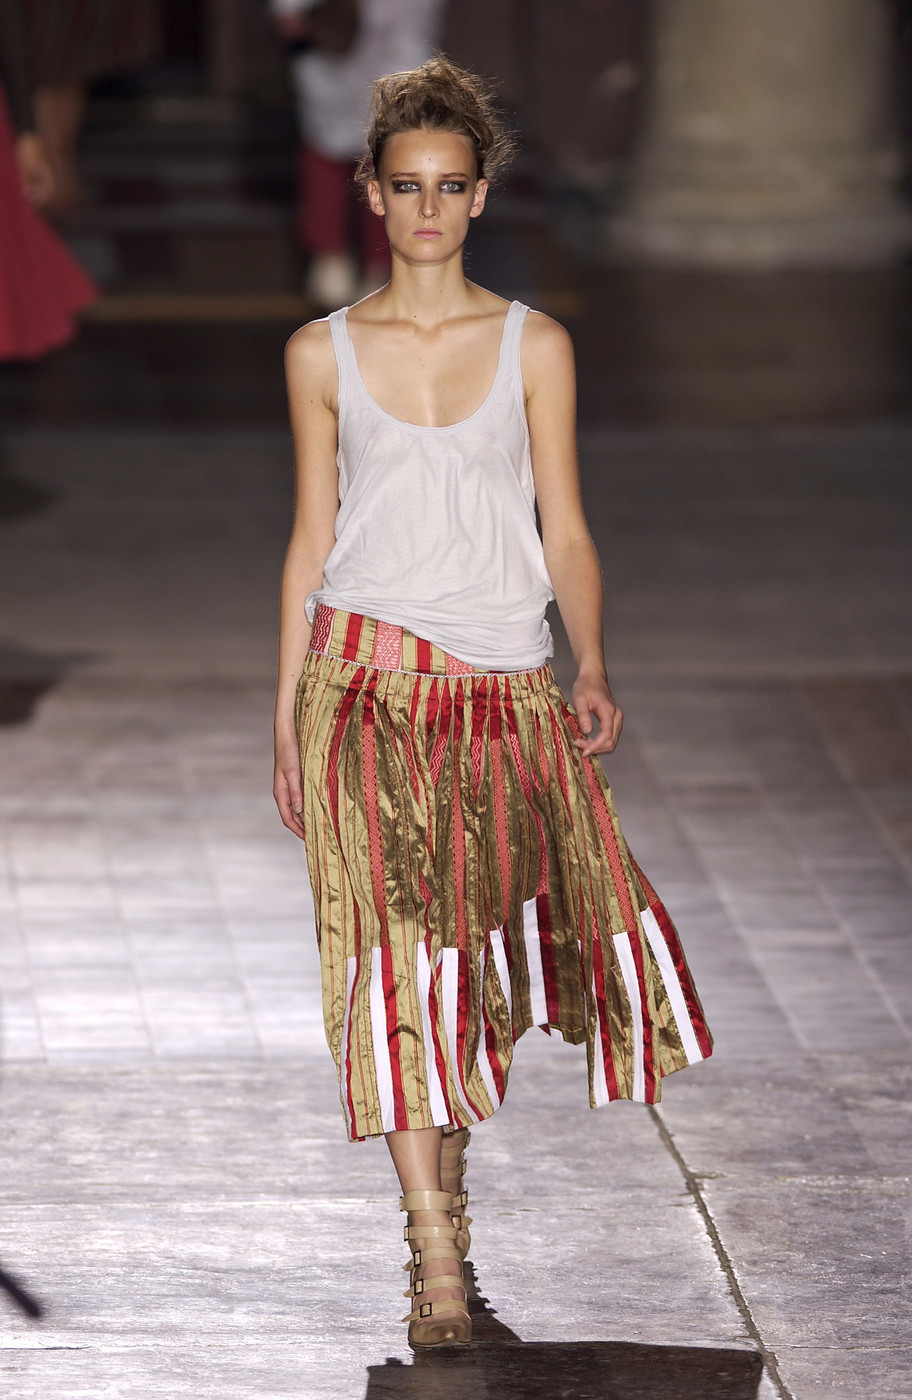 Dries van Noten Spring/Summer 2003 ready to wear collection